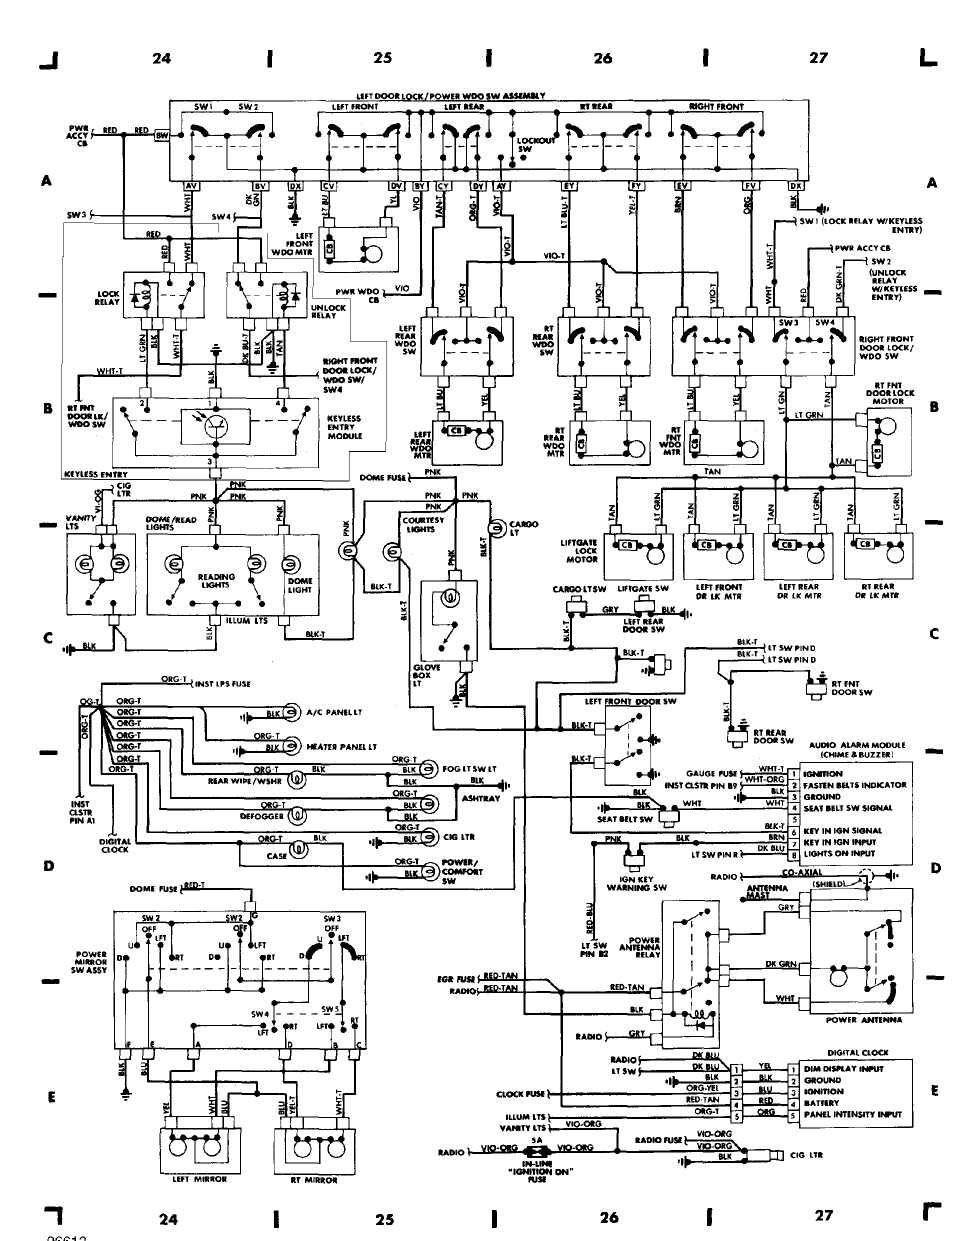 wiring_diagrams_html_61f5e0ad wiring diagrams 1984 1991 jeep cherokee (xj) jeep 2007 jeep grand cherokee tail light wiring diagram at bakdesigns.co